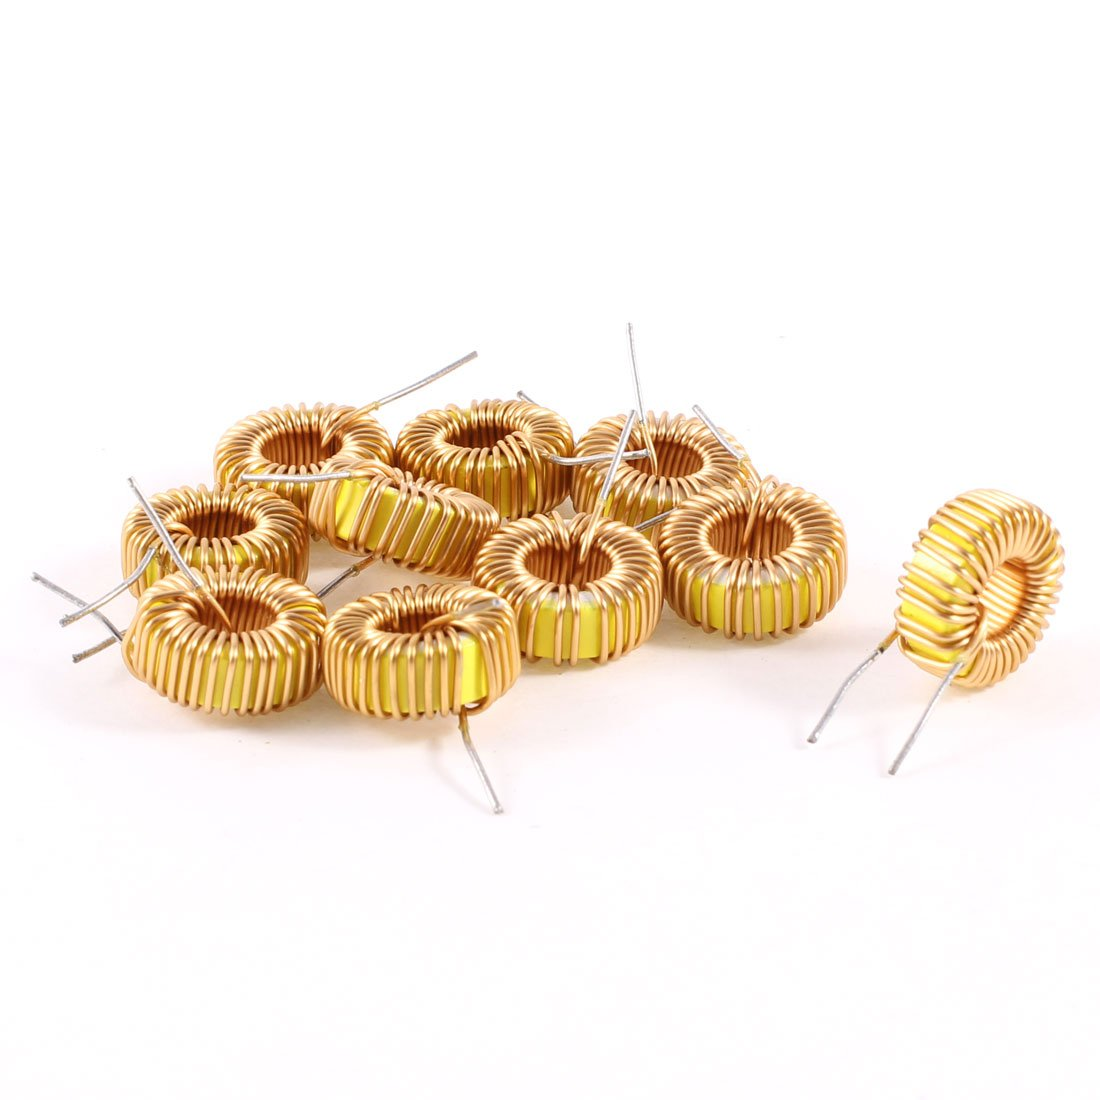 Uxcell a13071500ux0198 10 Piece Toroid Core Inductor Wire Wind Wound 47uH 38mOhm 3 Amp, Coil